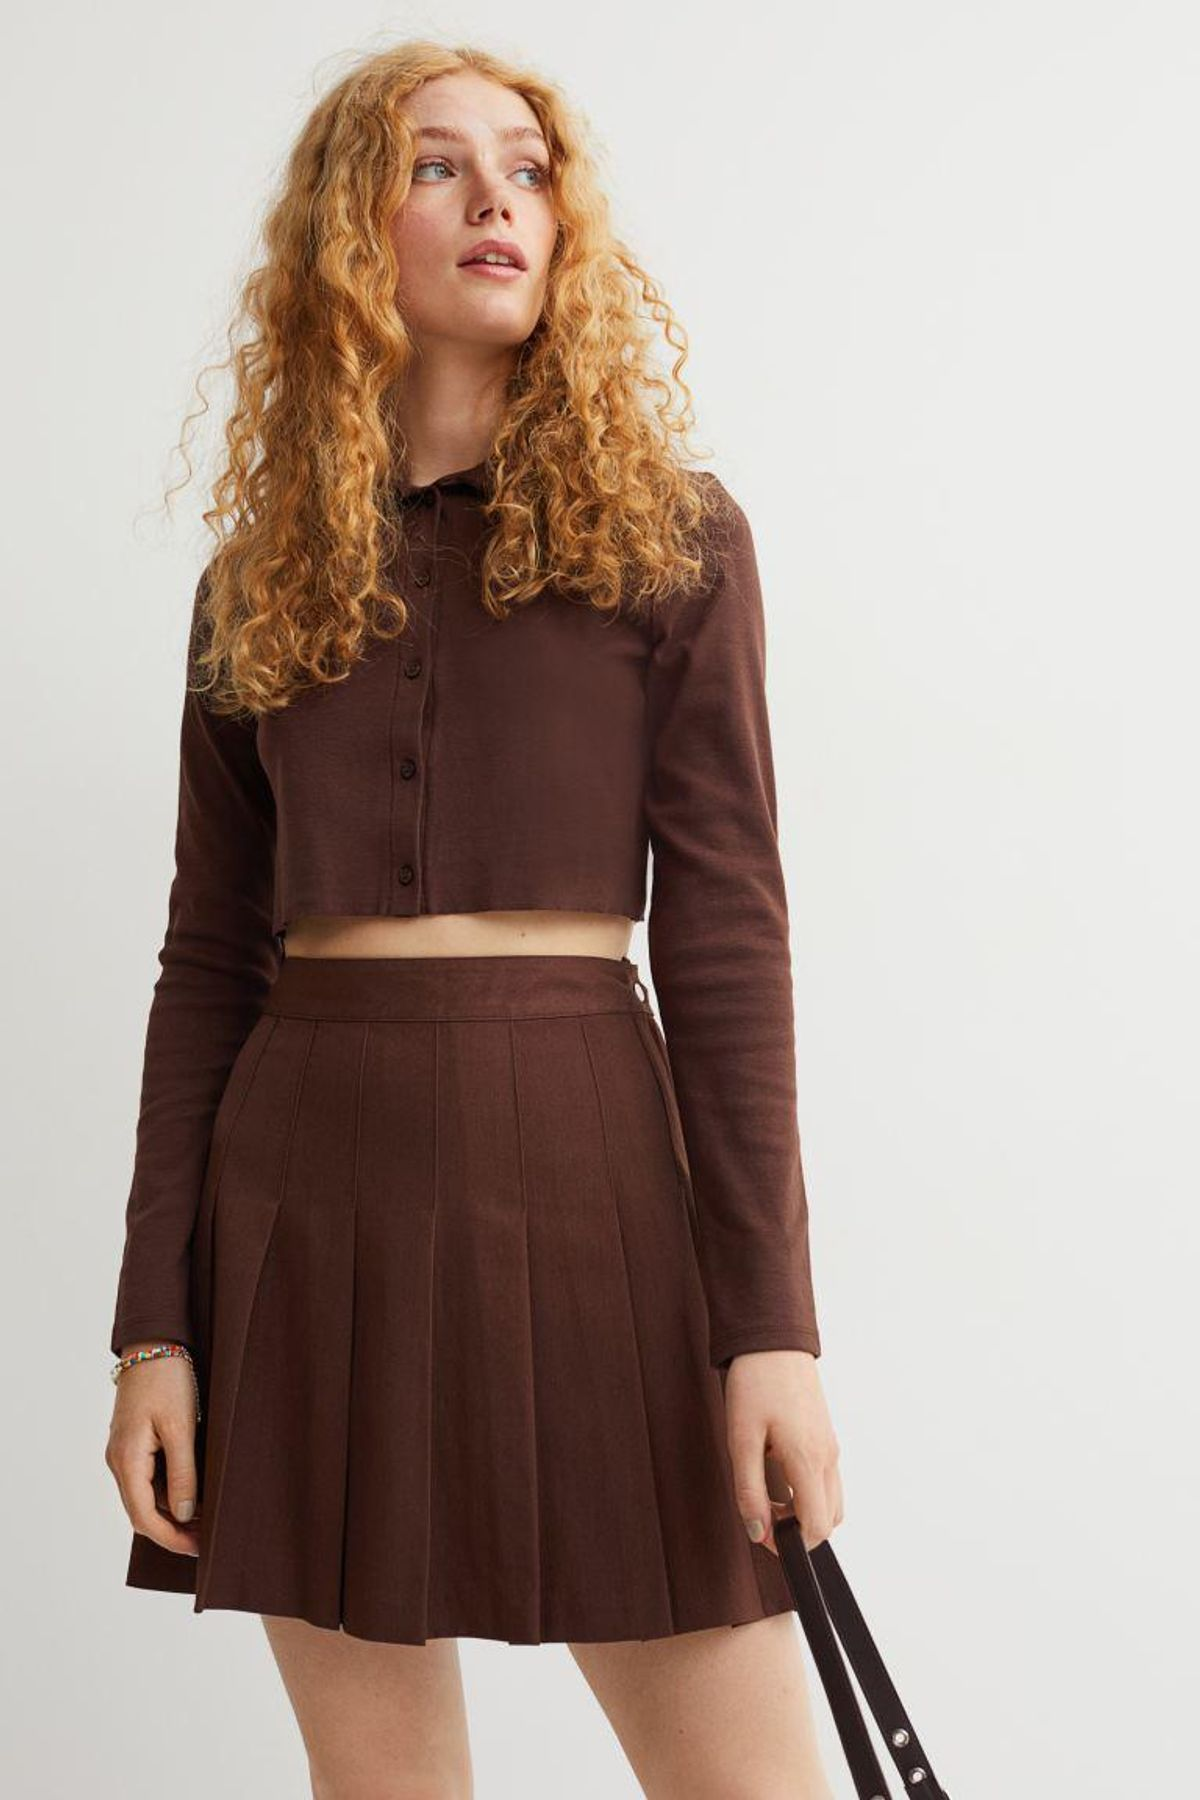 h and m short pleated skirt